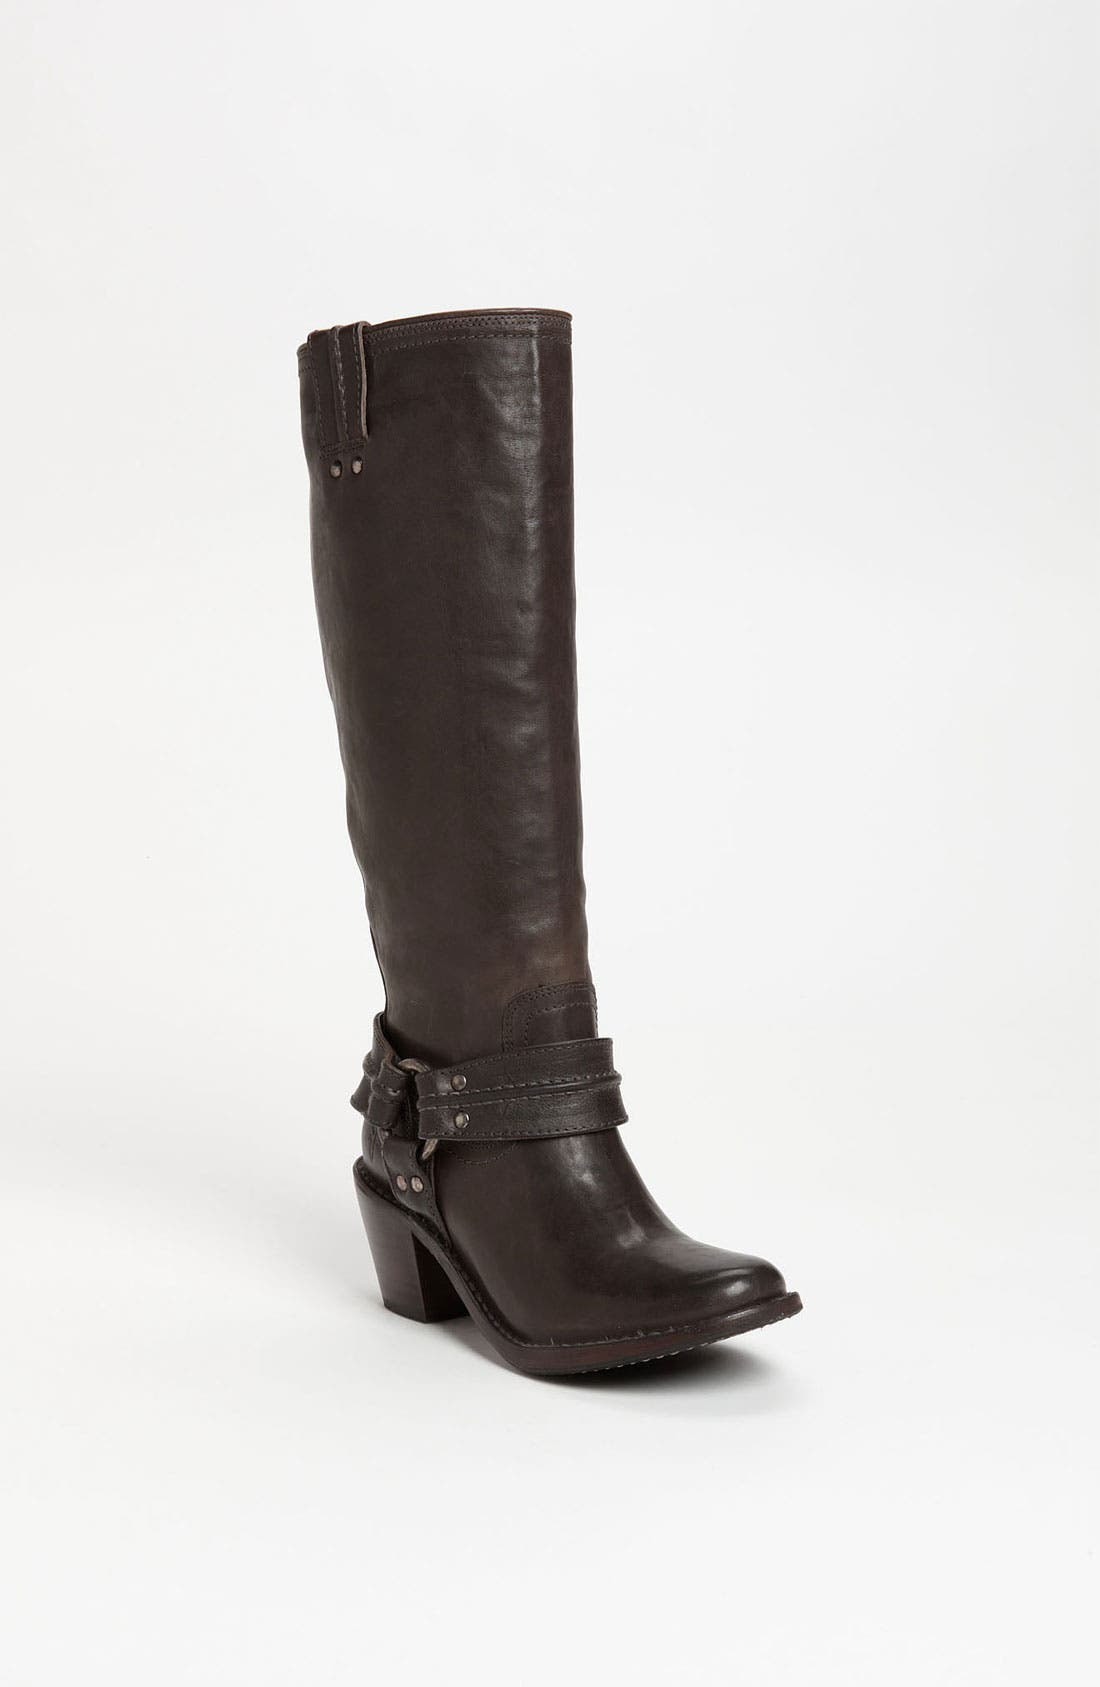 Alternate Image 1 Selected - Frye 'Carmen' Harness Tall Boot